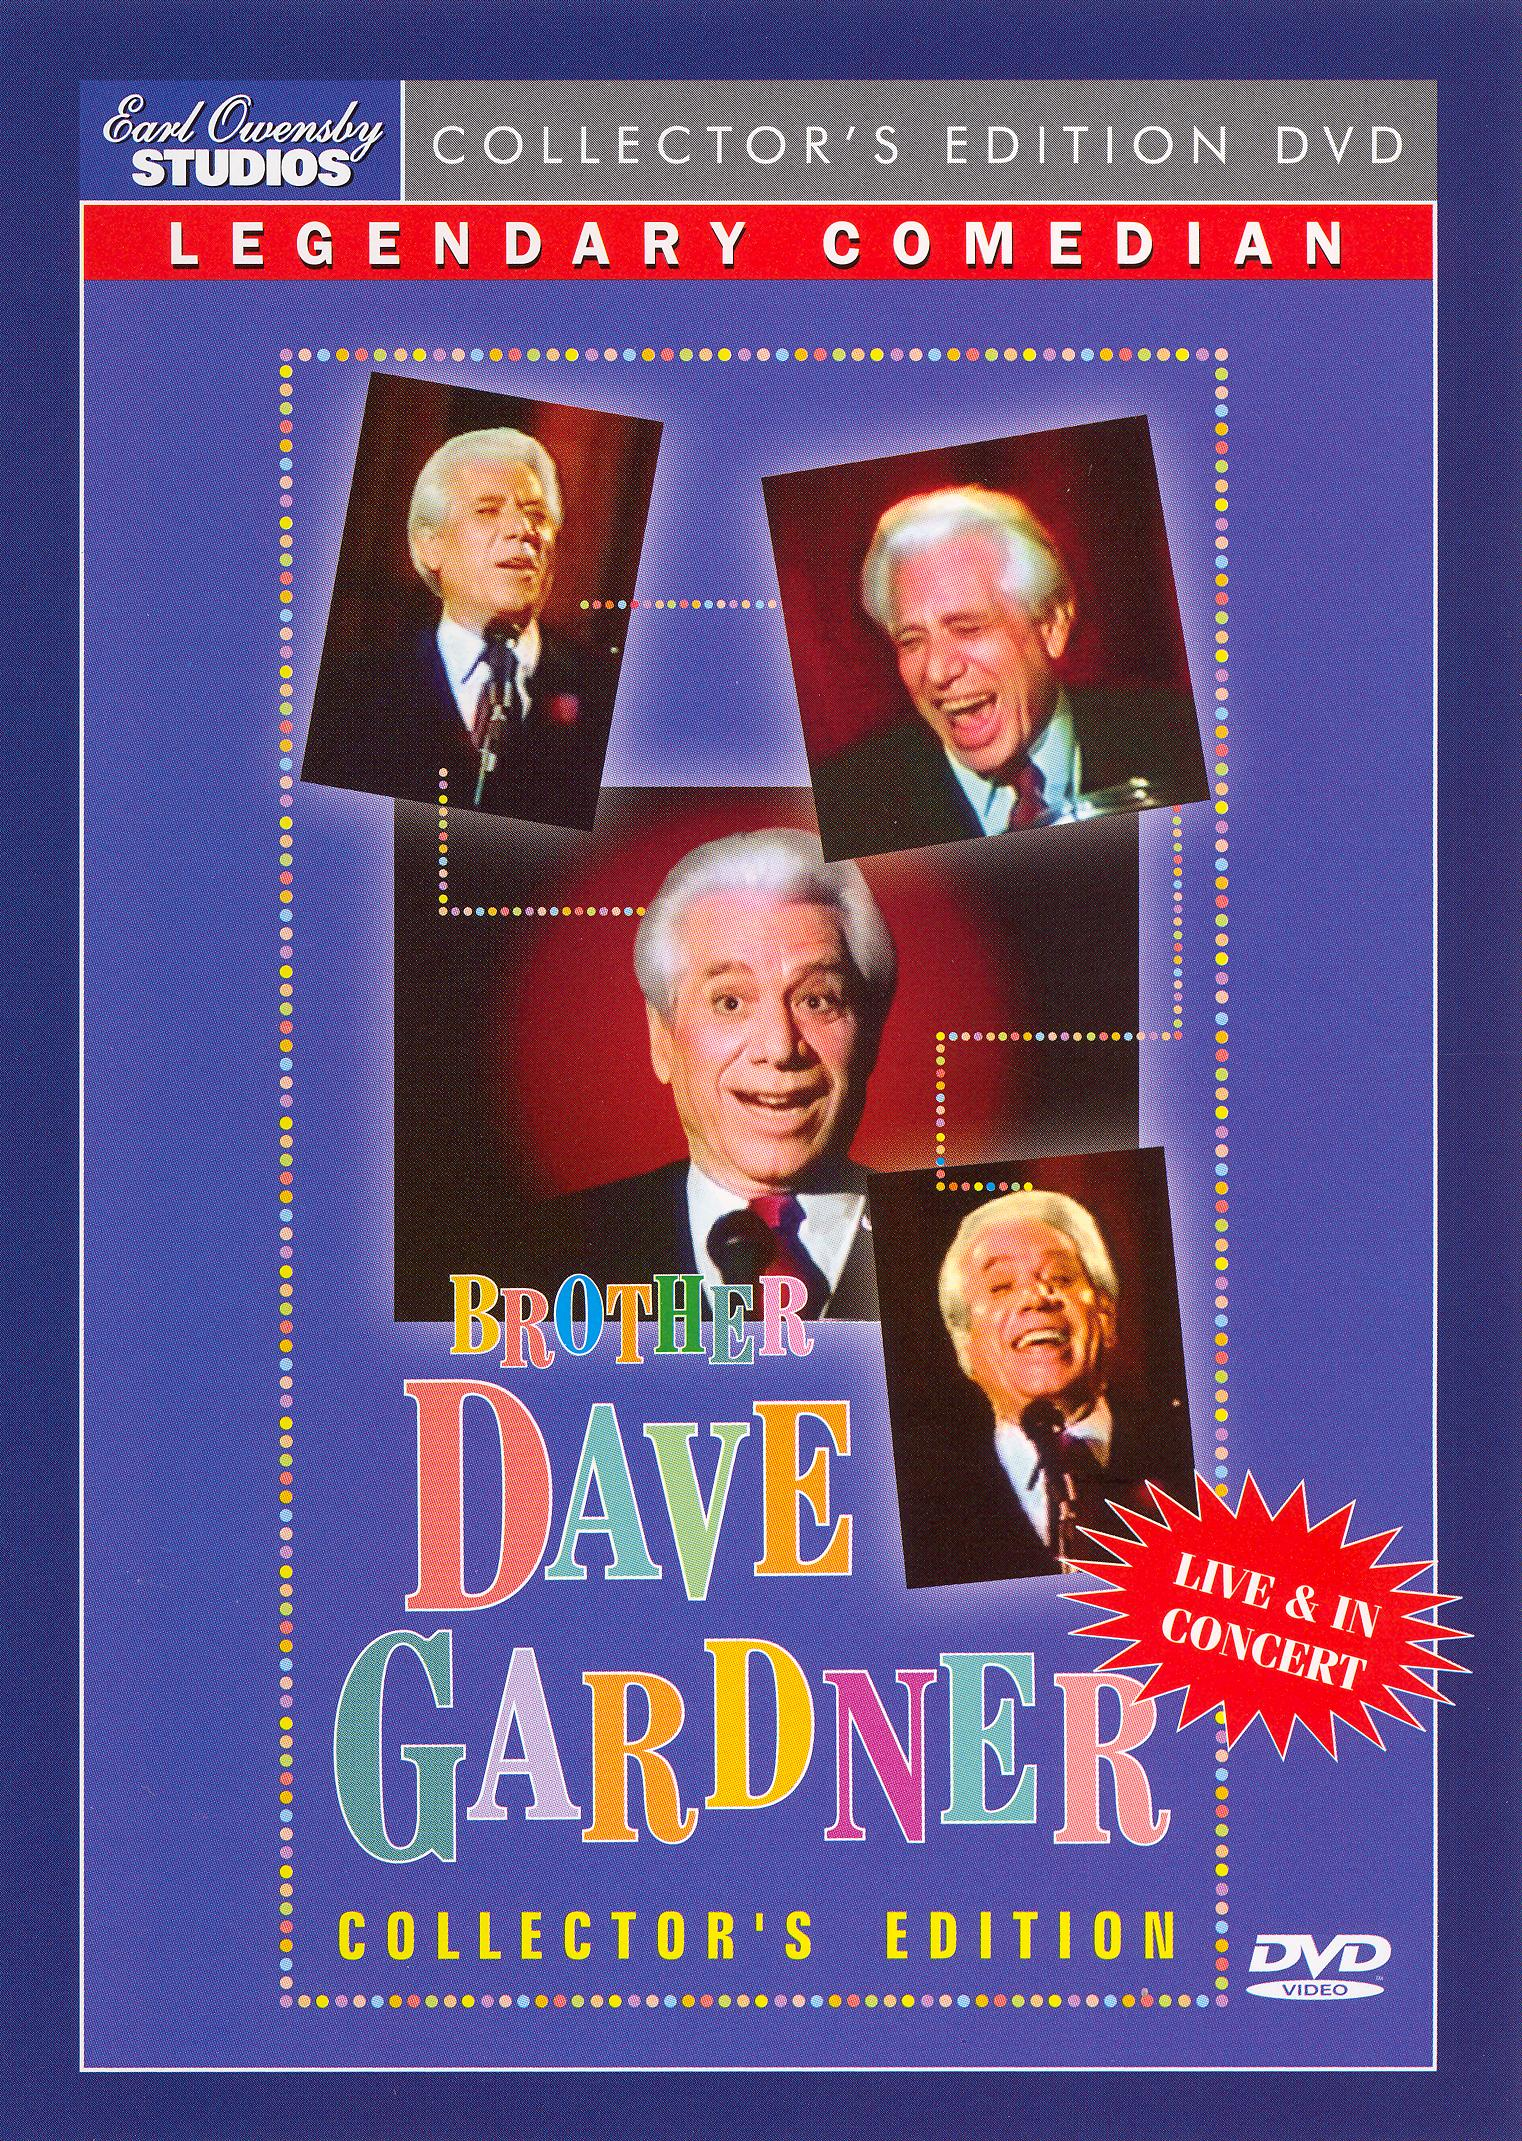 Dave Gardner: Collector's Edition